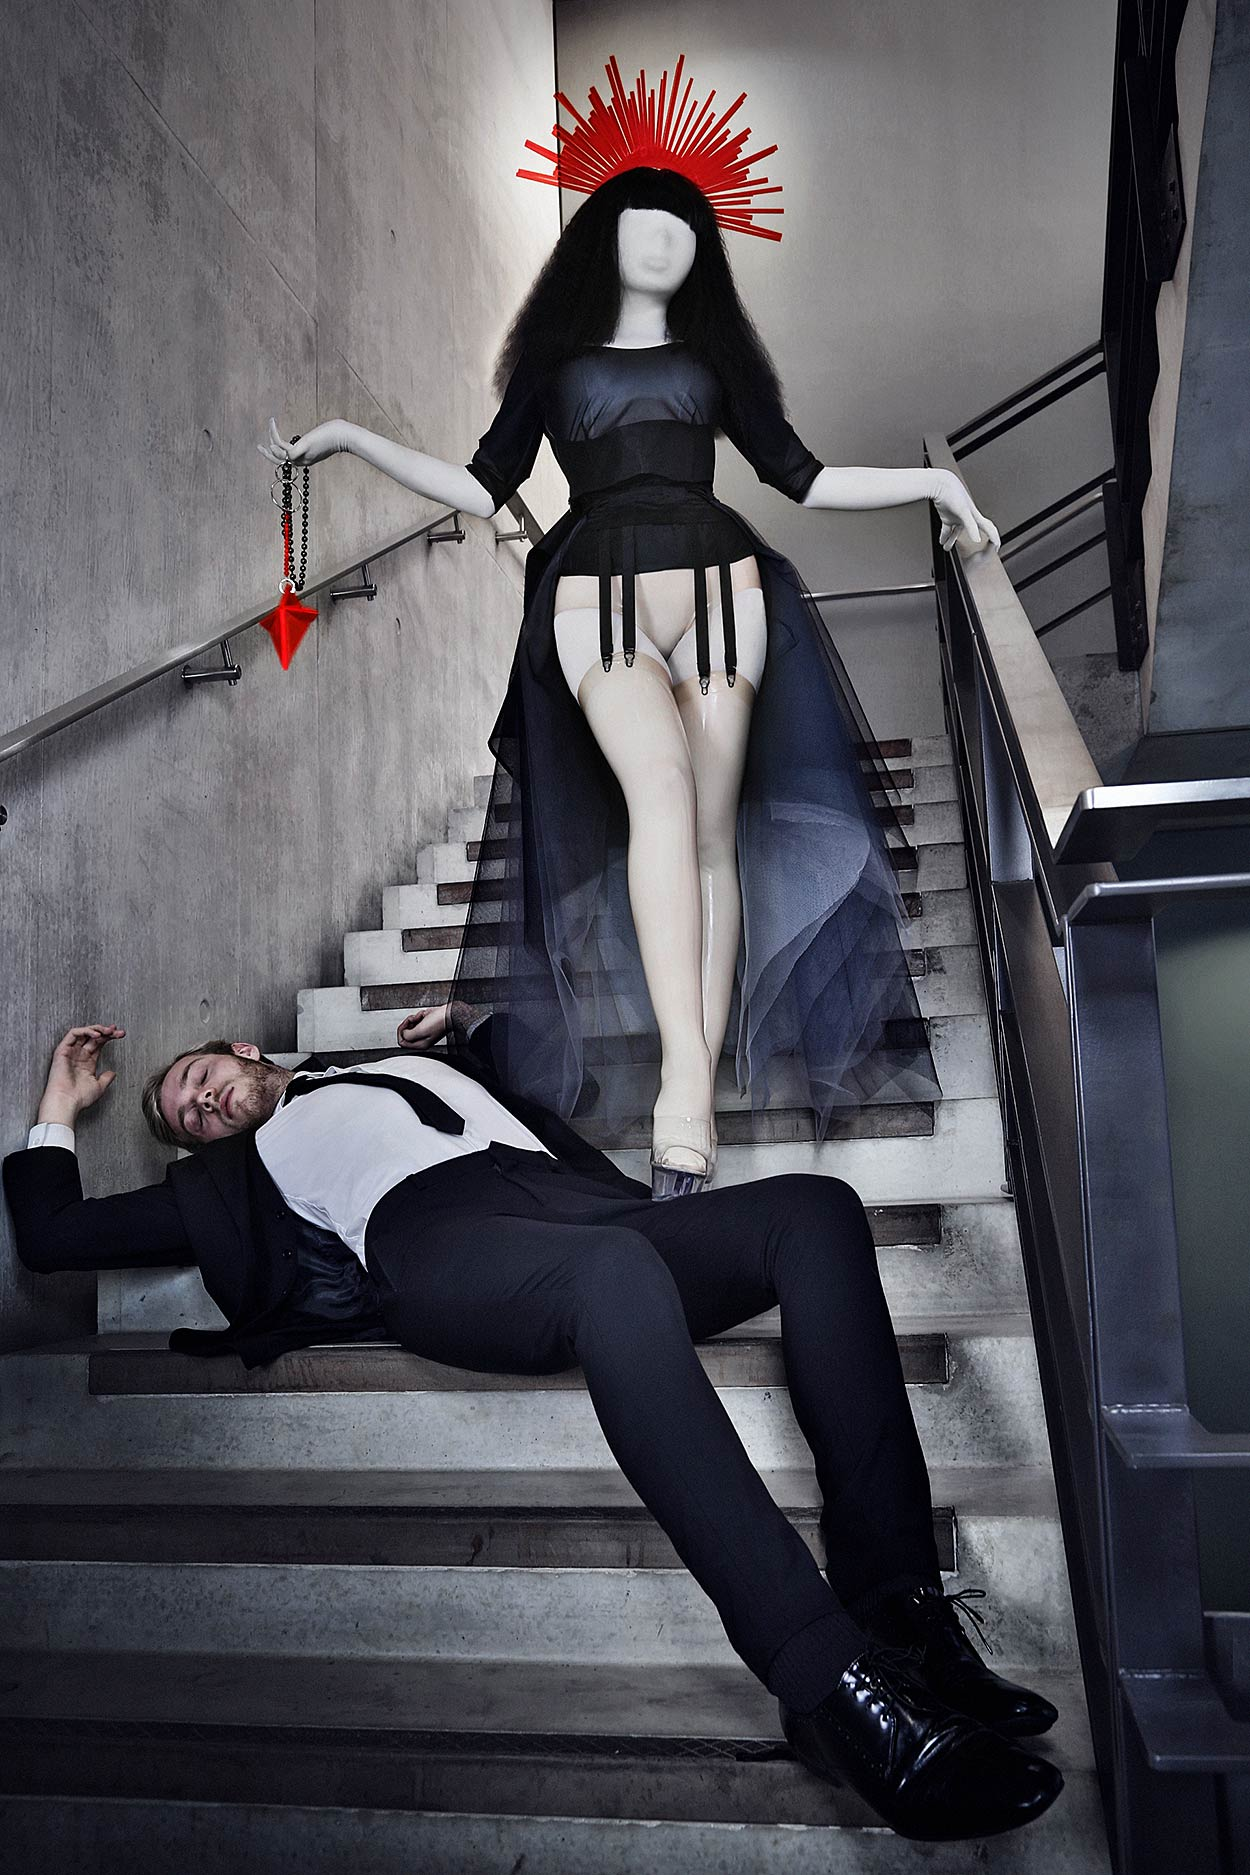 Reverse pieta: A voluptuous, saintly woman with a neon pink halo is wearing latex stockings and descending a flight of stairs, stepping on an unconscious man.